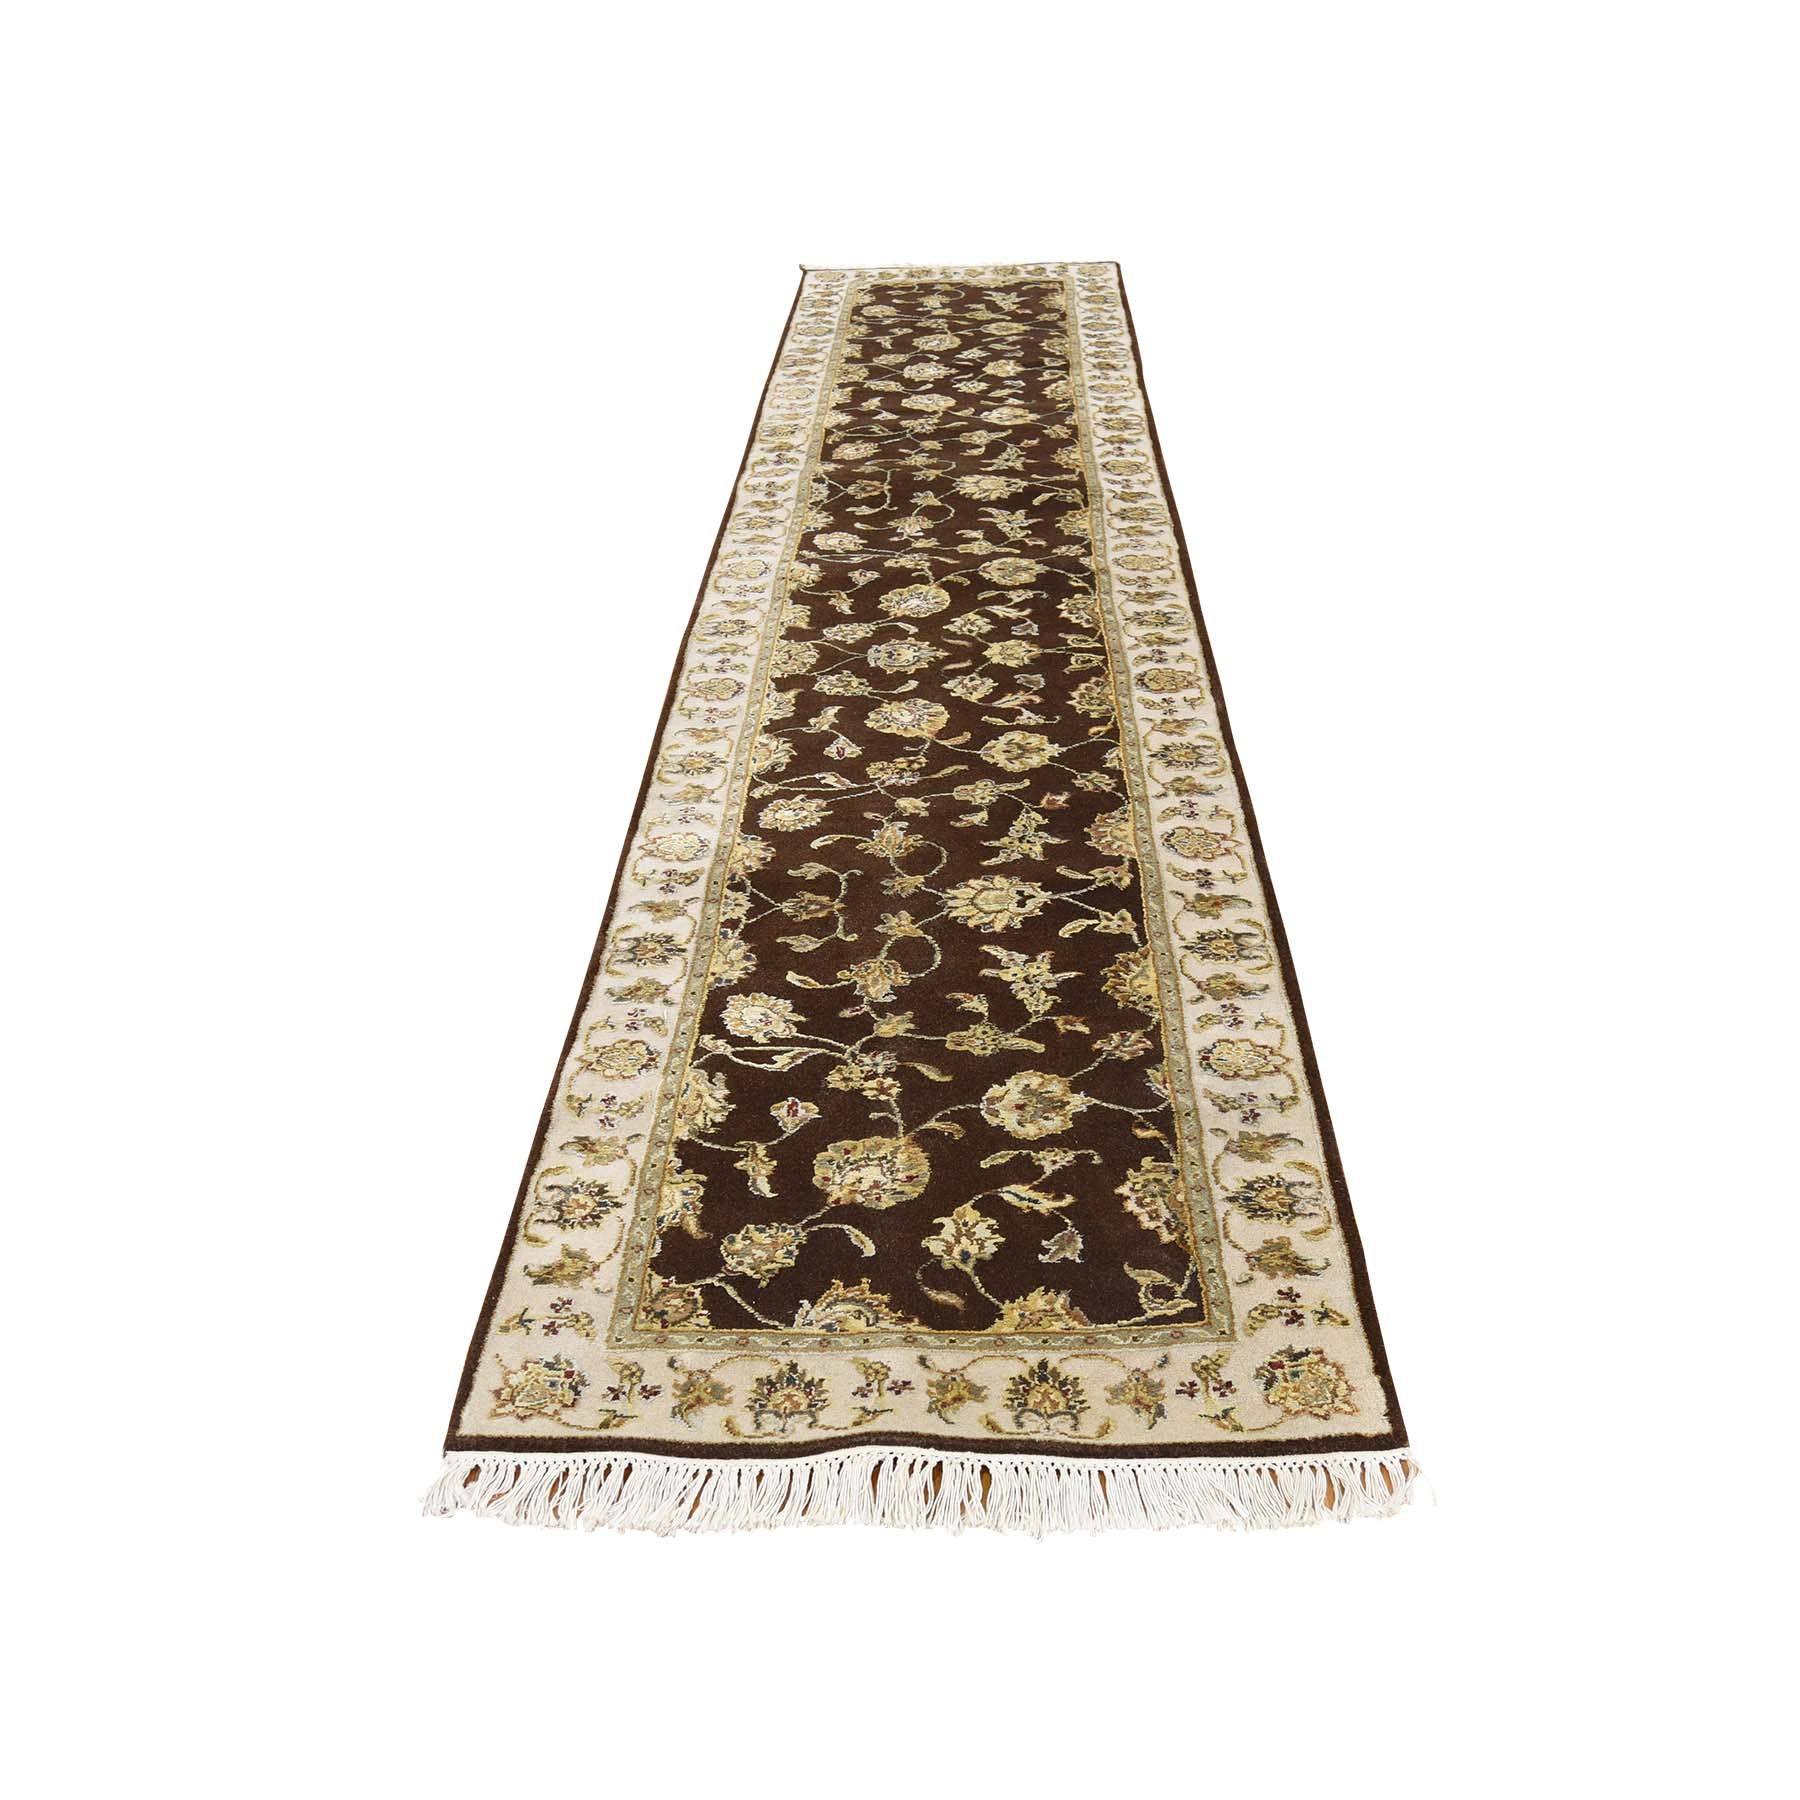 2'6''X12'1'' Hand-Knotted Half Wool Half Silk Rajasthan Runner Rug moac8c0c